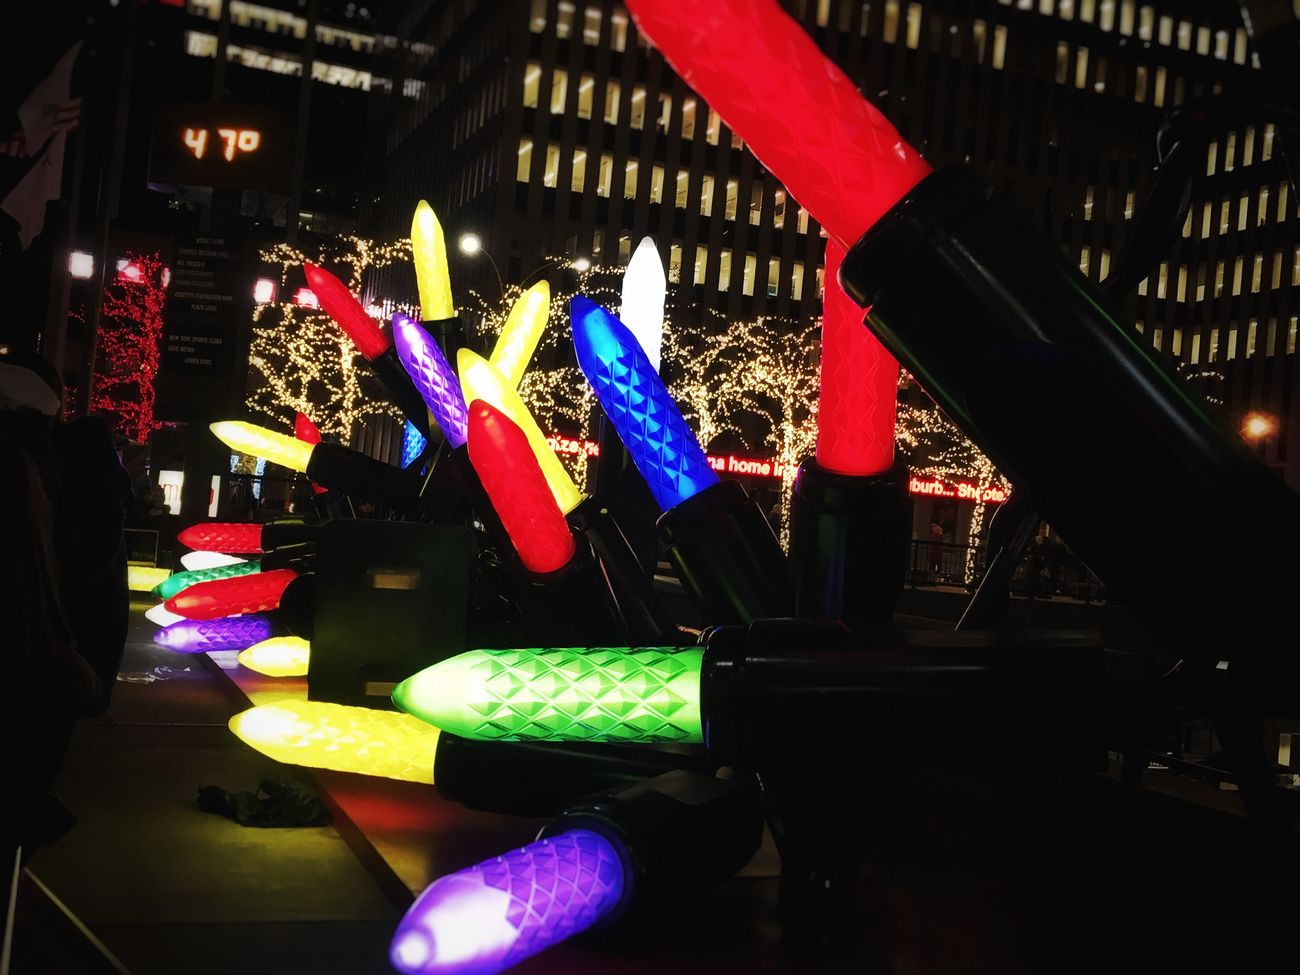 Giantlight Christmas Lights Colorful Festival Of Lights Travel Photography Check This Out Multi Colored Night Hanging Out Taking Photos Love ♥ New York City Strolling Around Holidays Christmas Decorations Travel Happyness